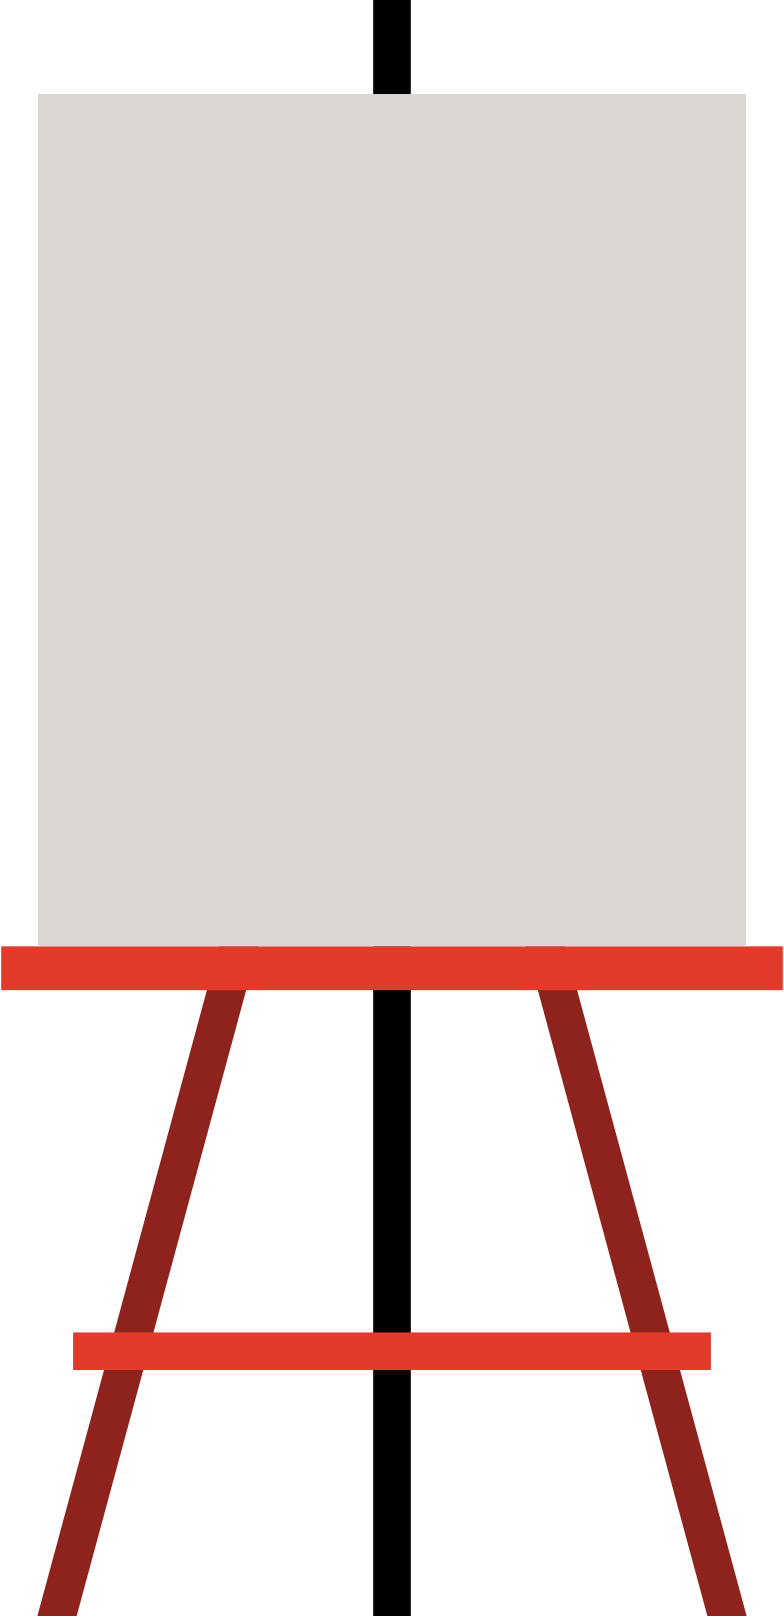 canvas Clipart illustration in PNG, SVG